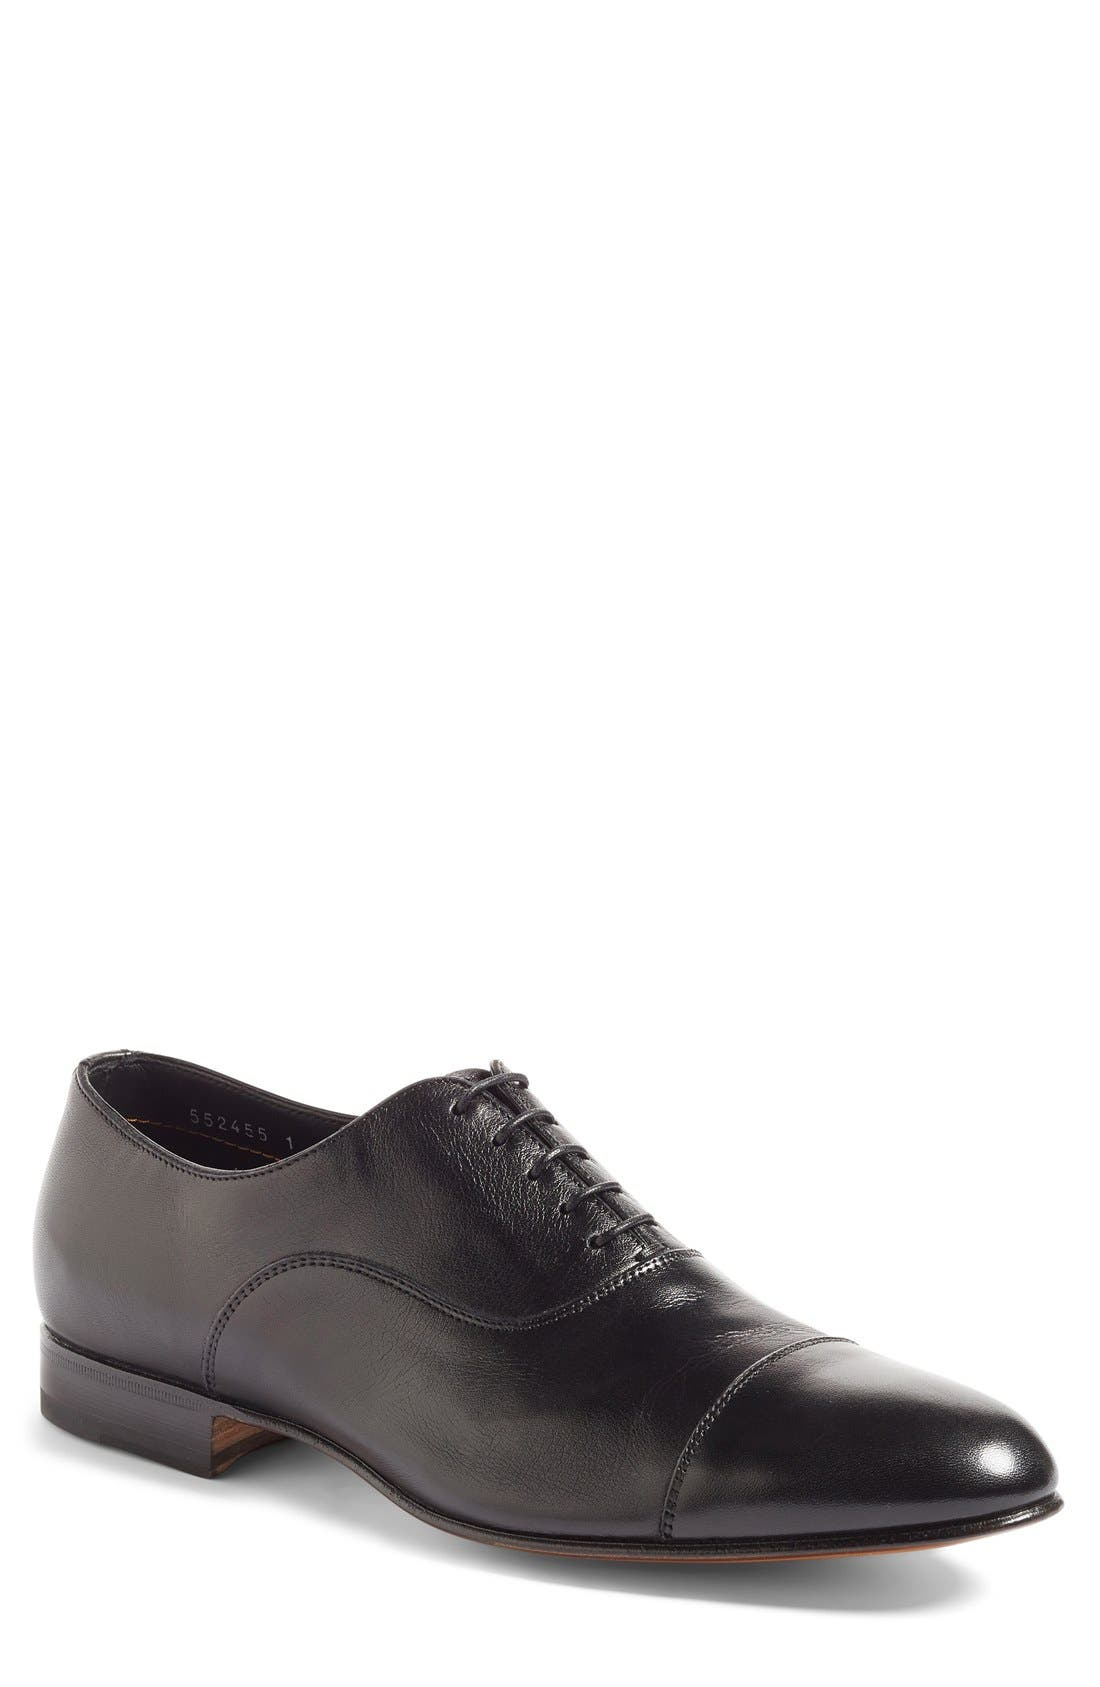 Santoni 'Darian' Cap Toe Oxford (Men)